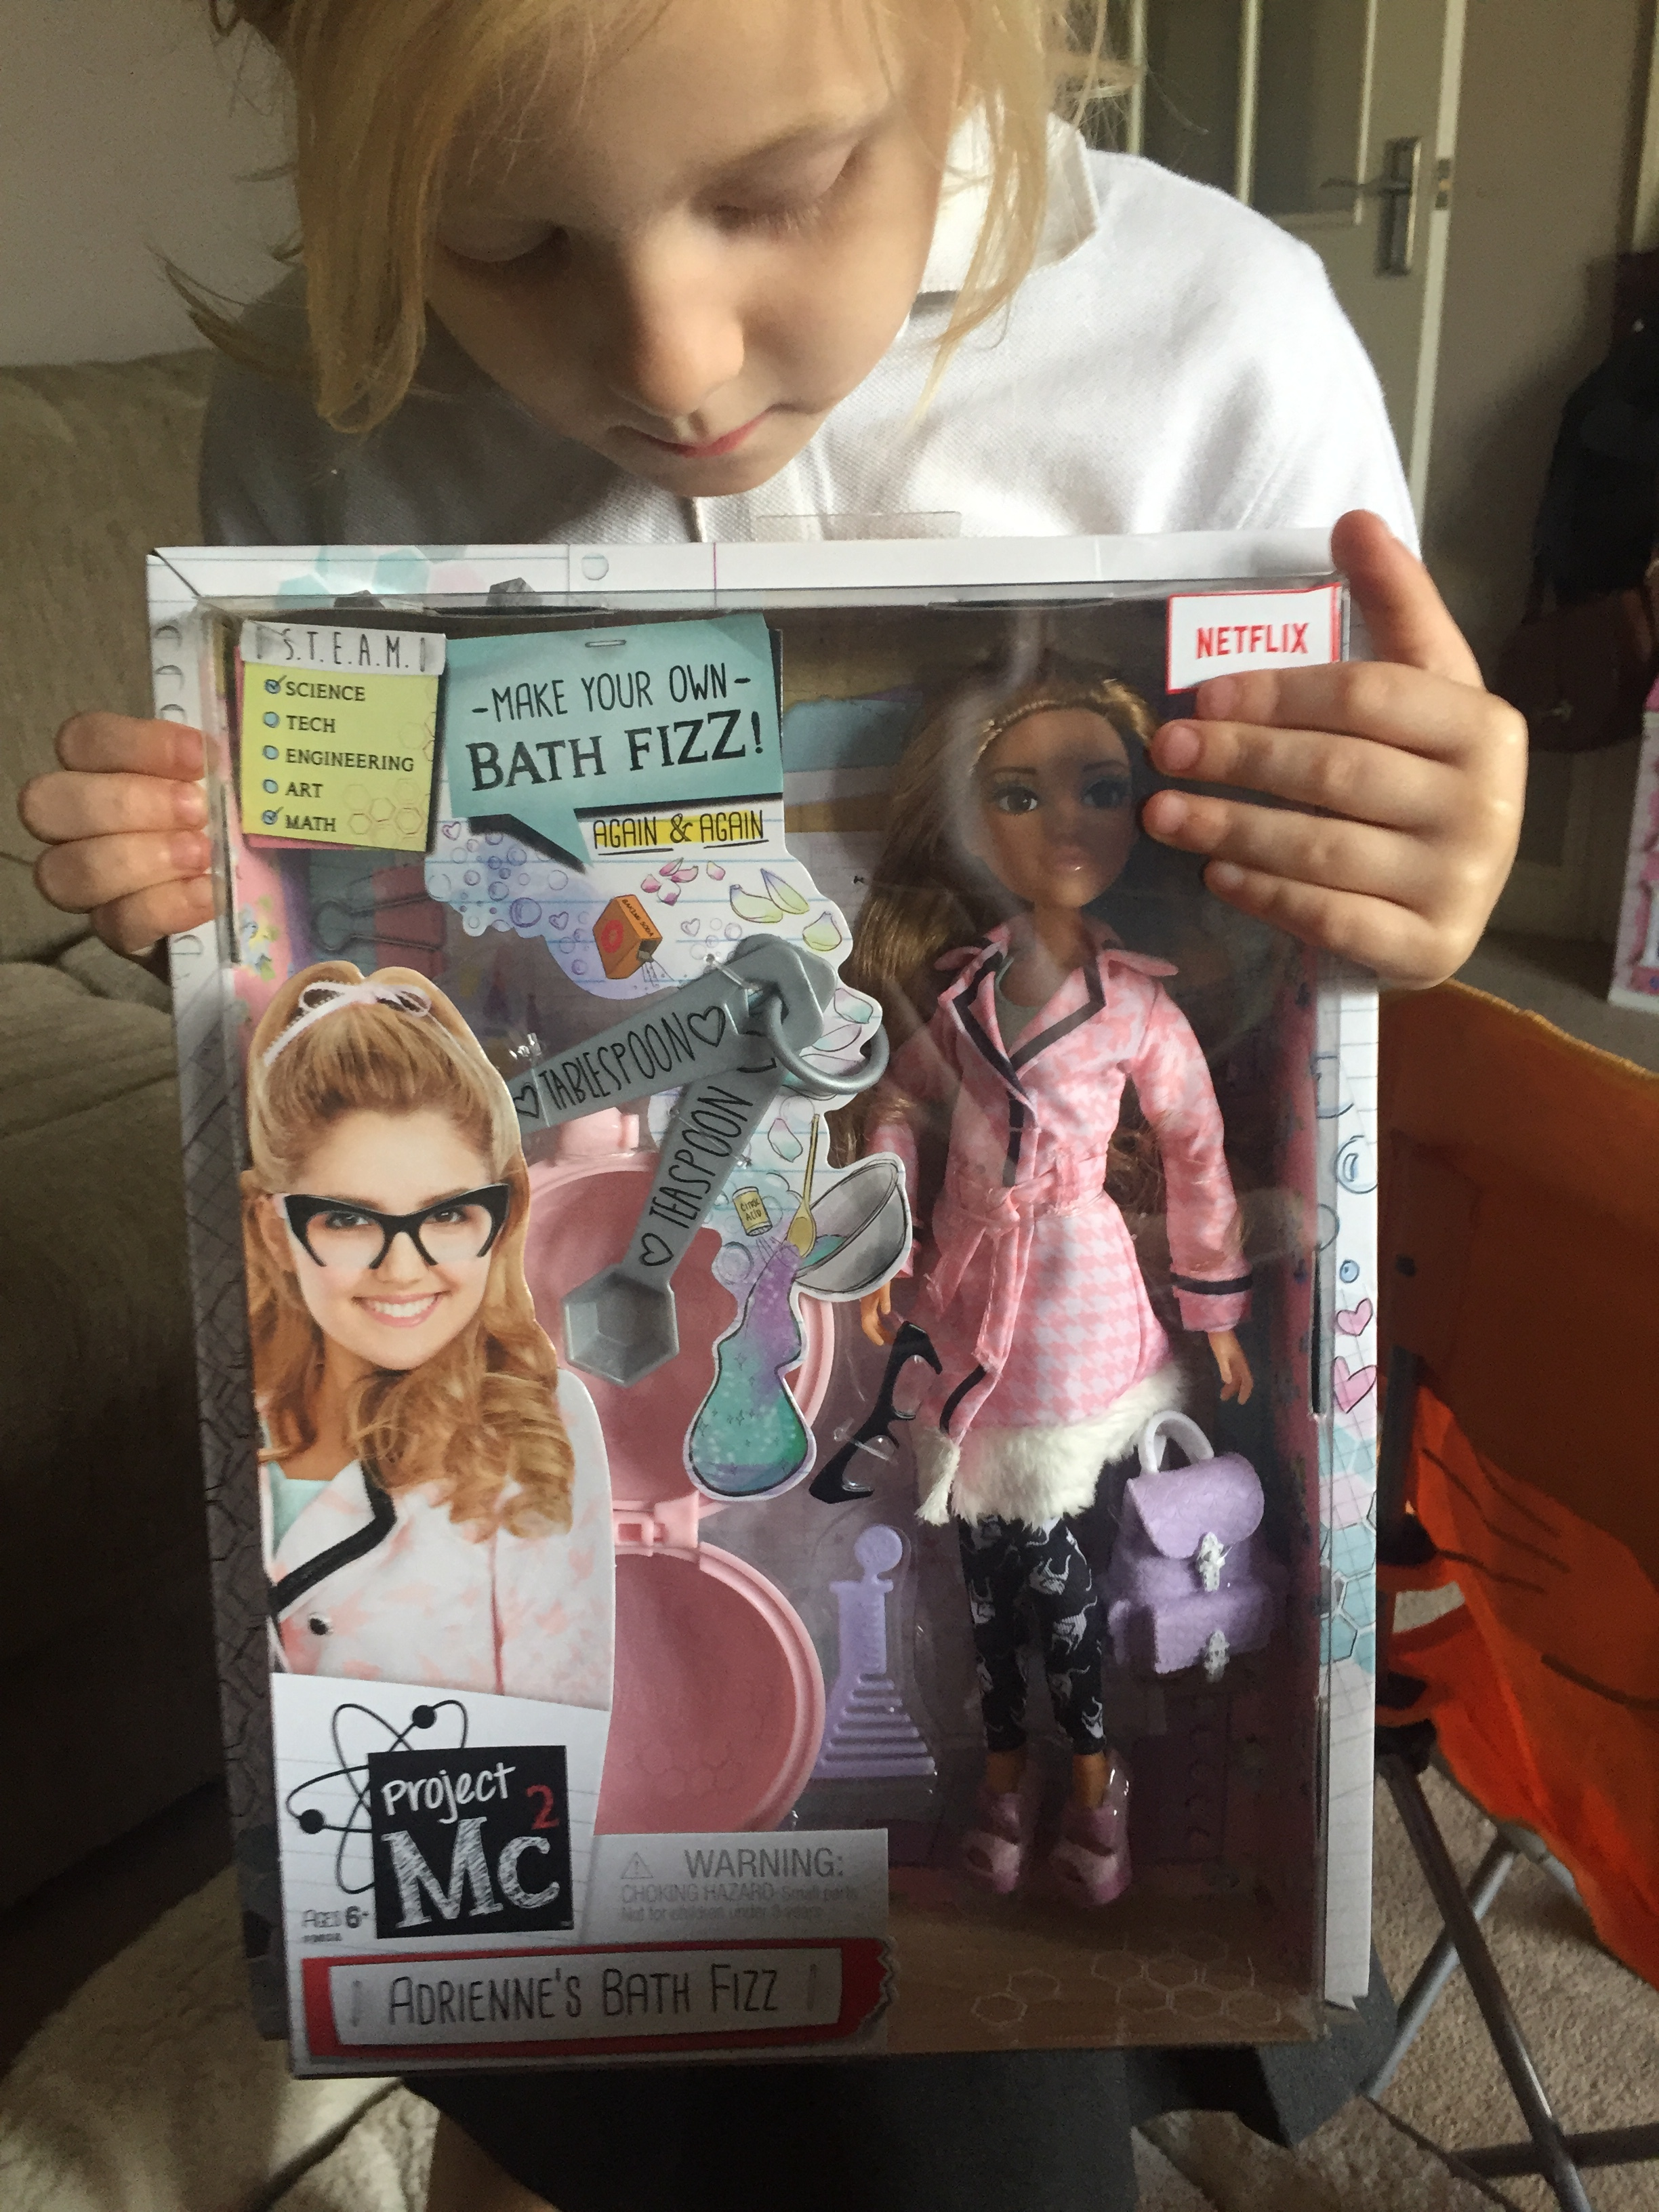 Adrienne Attoms is part of the Project Mc2 collection of dolls that involve the S.T.E.A.M. approach to education. (Science. Technology. Engineering. Arts. Math). They are designed to encourage and stimulate interest in science and math.